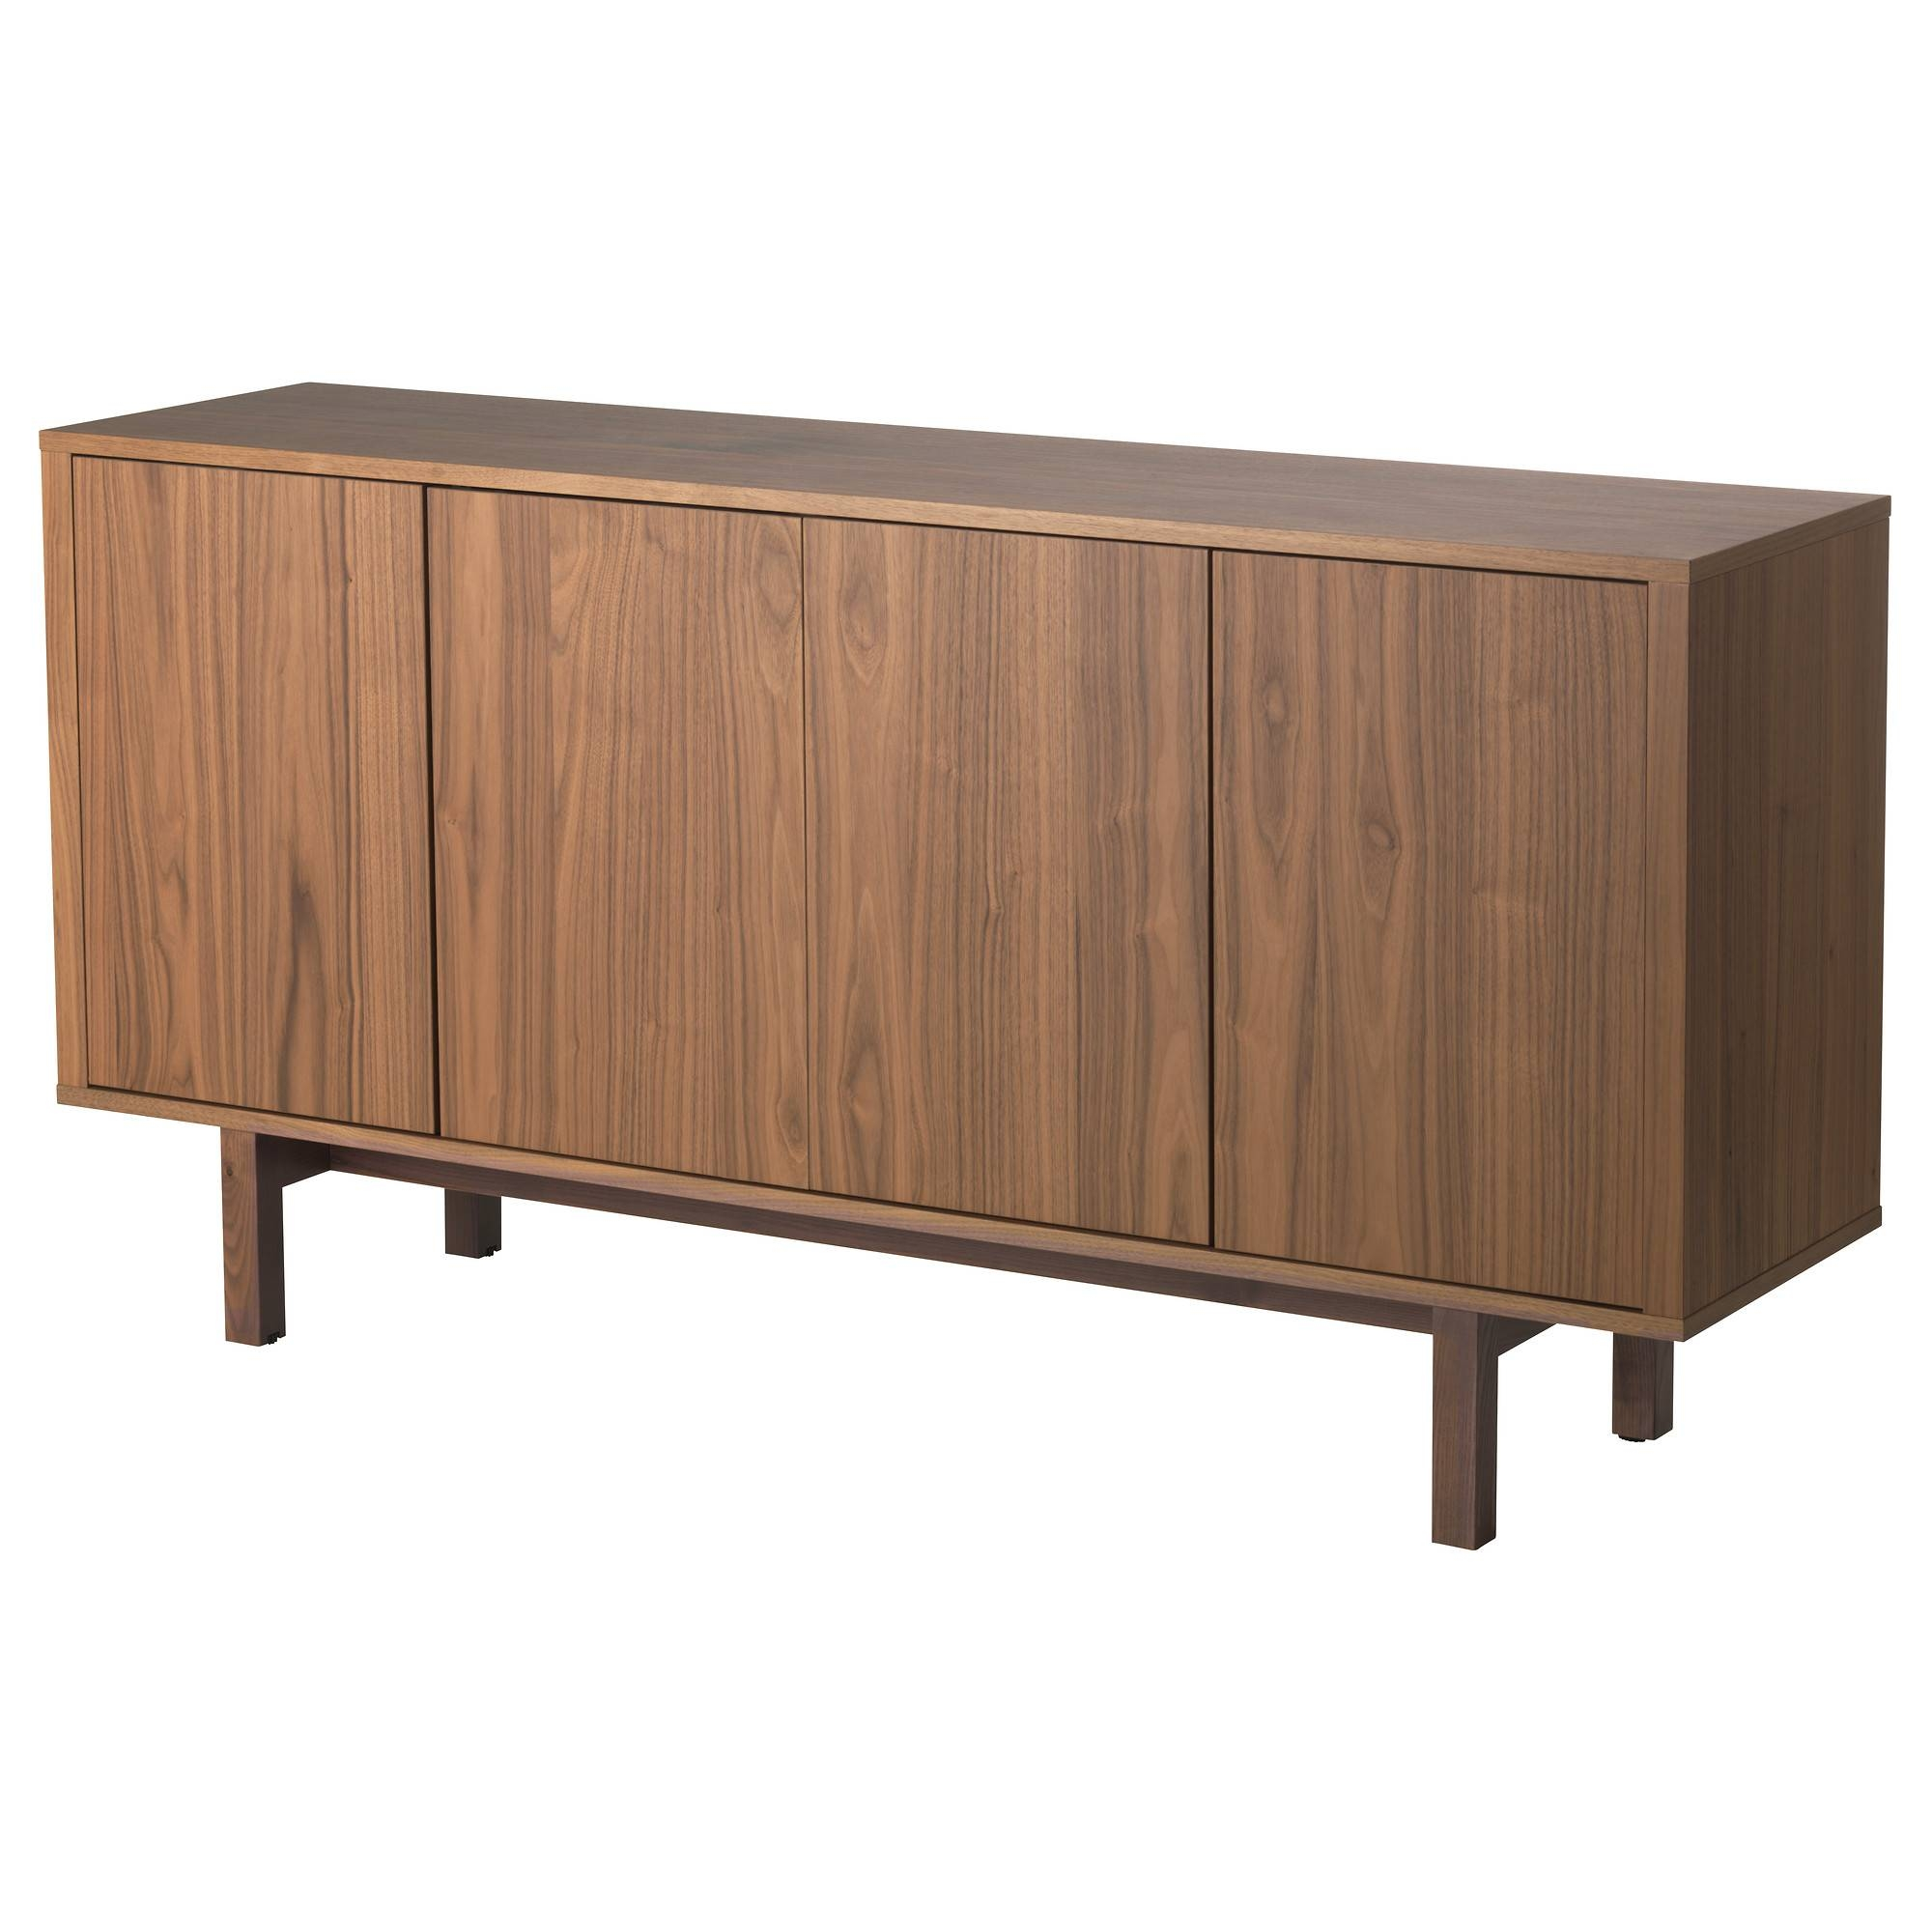 Buffet Tables & Sideboards - Ikea with regard to Media Sideboards (Image 3 of 15)